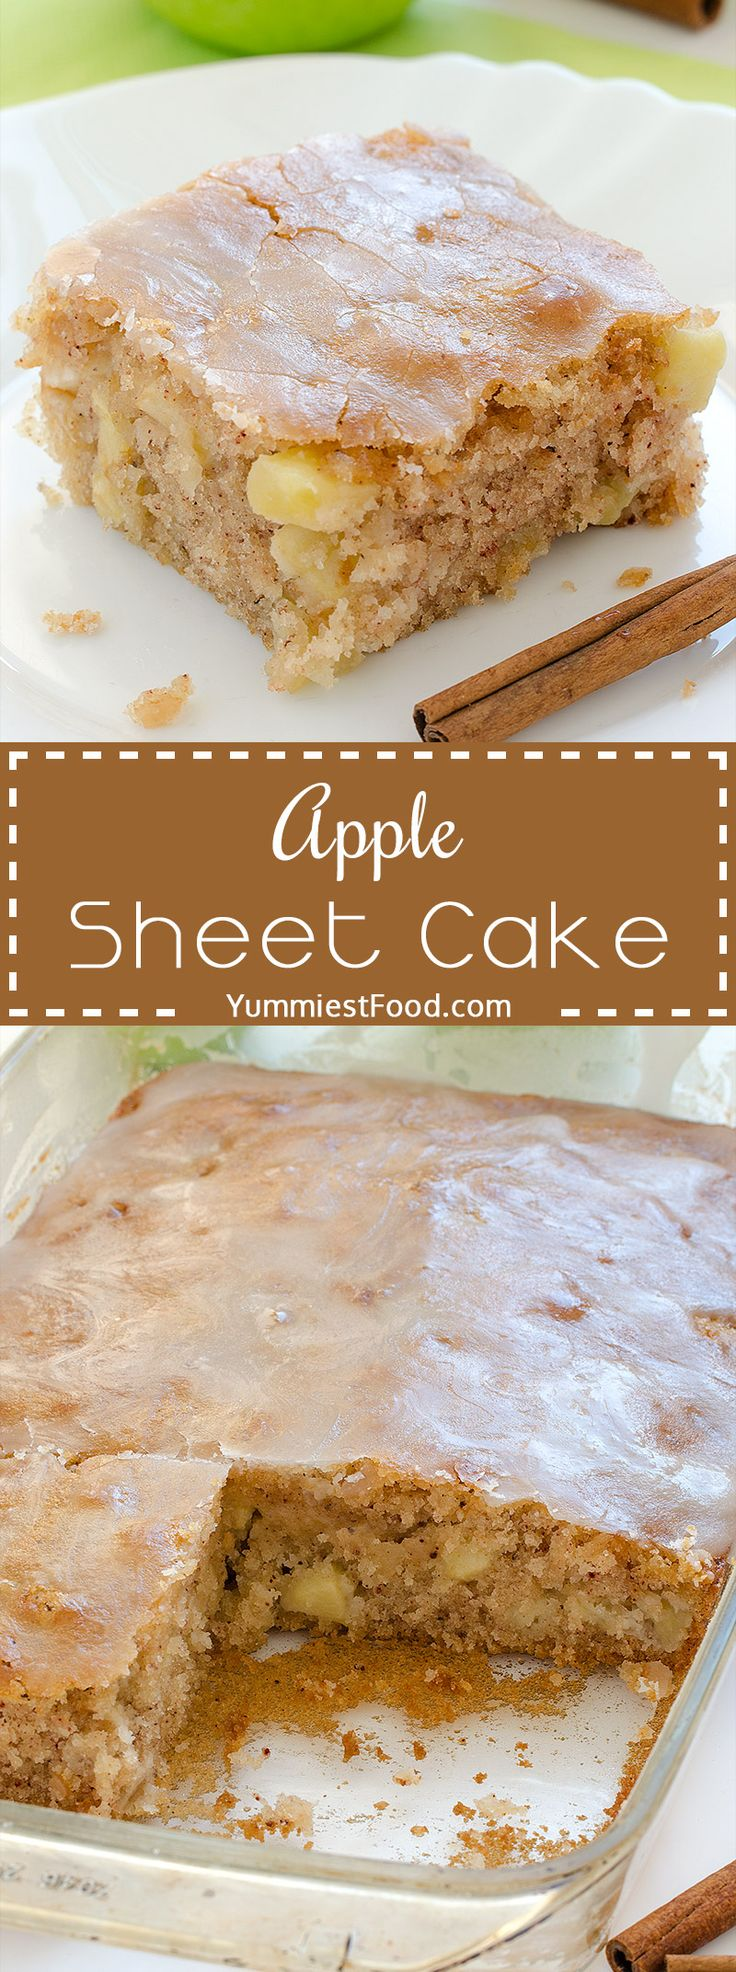 This Apple Sheet Cake is made with fresh apples and only few ingredients